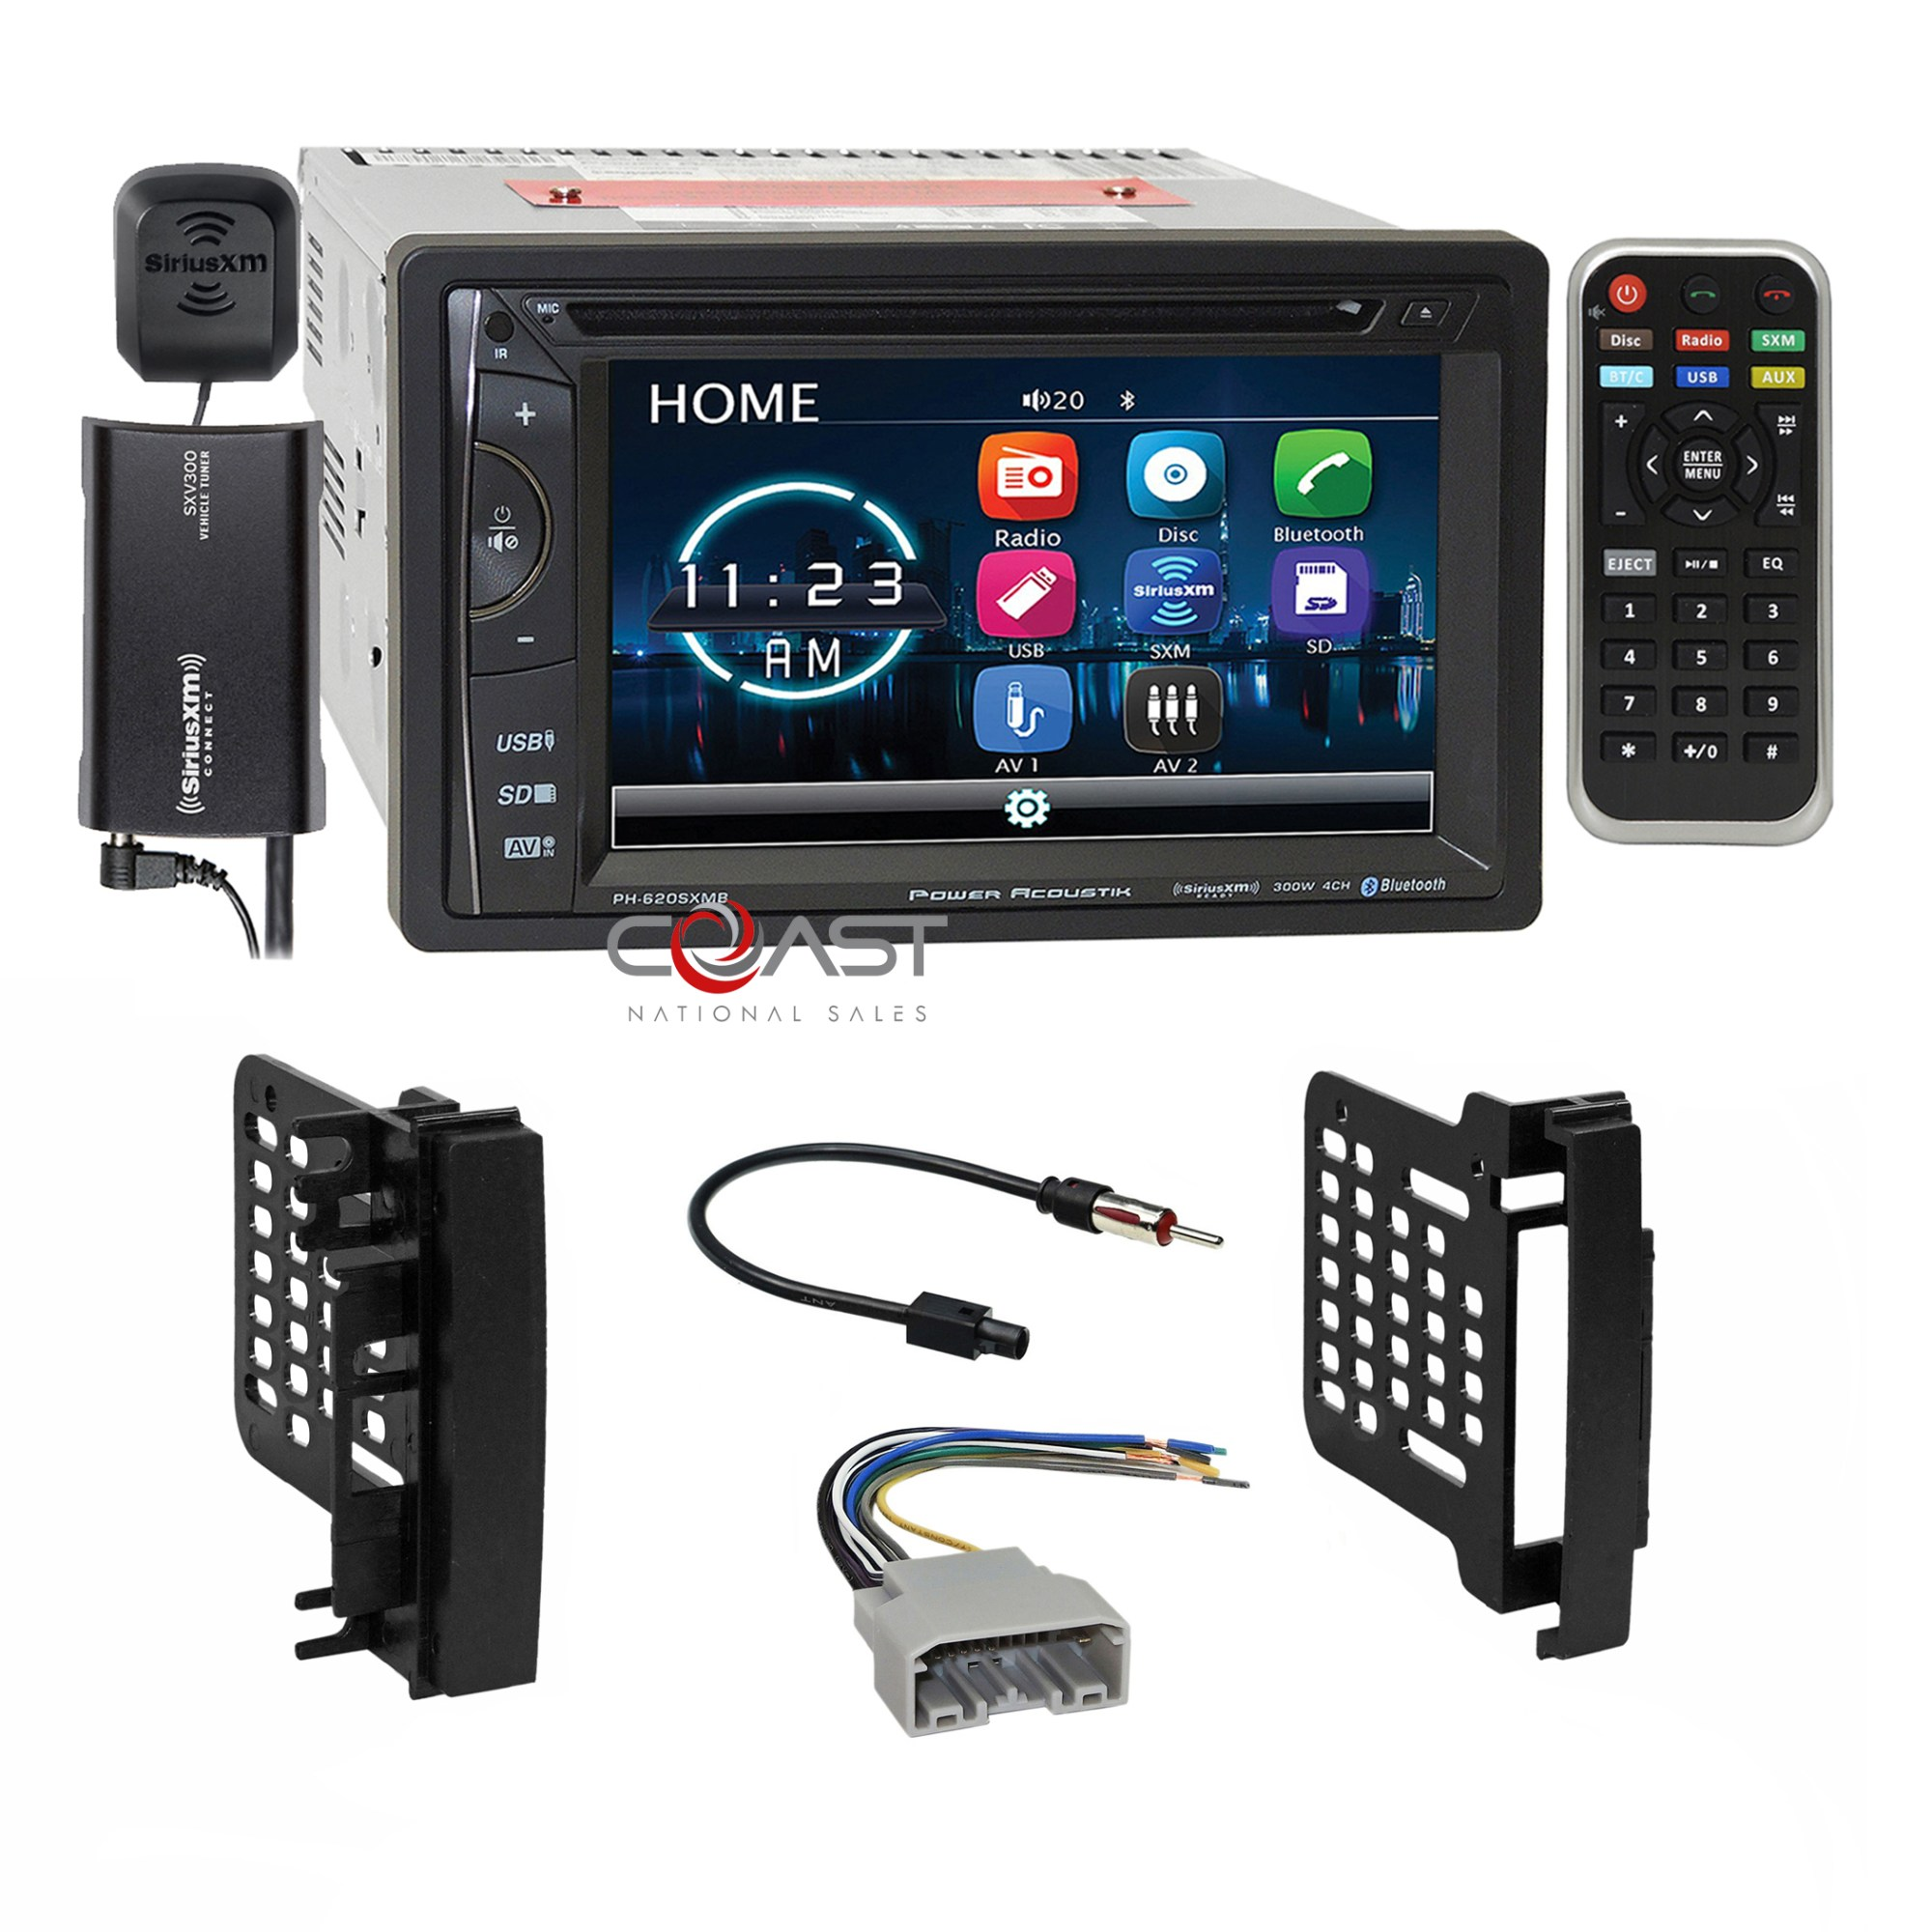 hight resolution of details about power acoustik dvd bt sirius stereo dash kit harness for chrysler dodge jeep